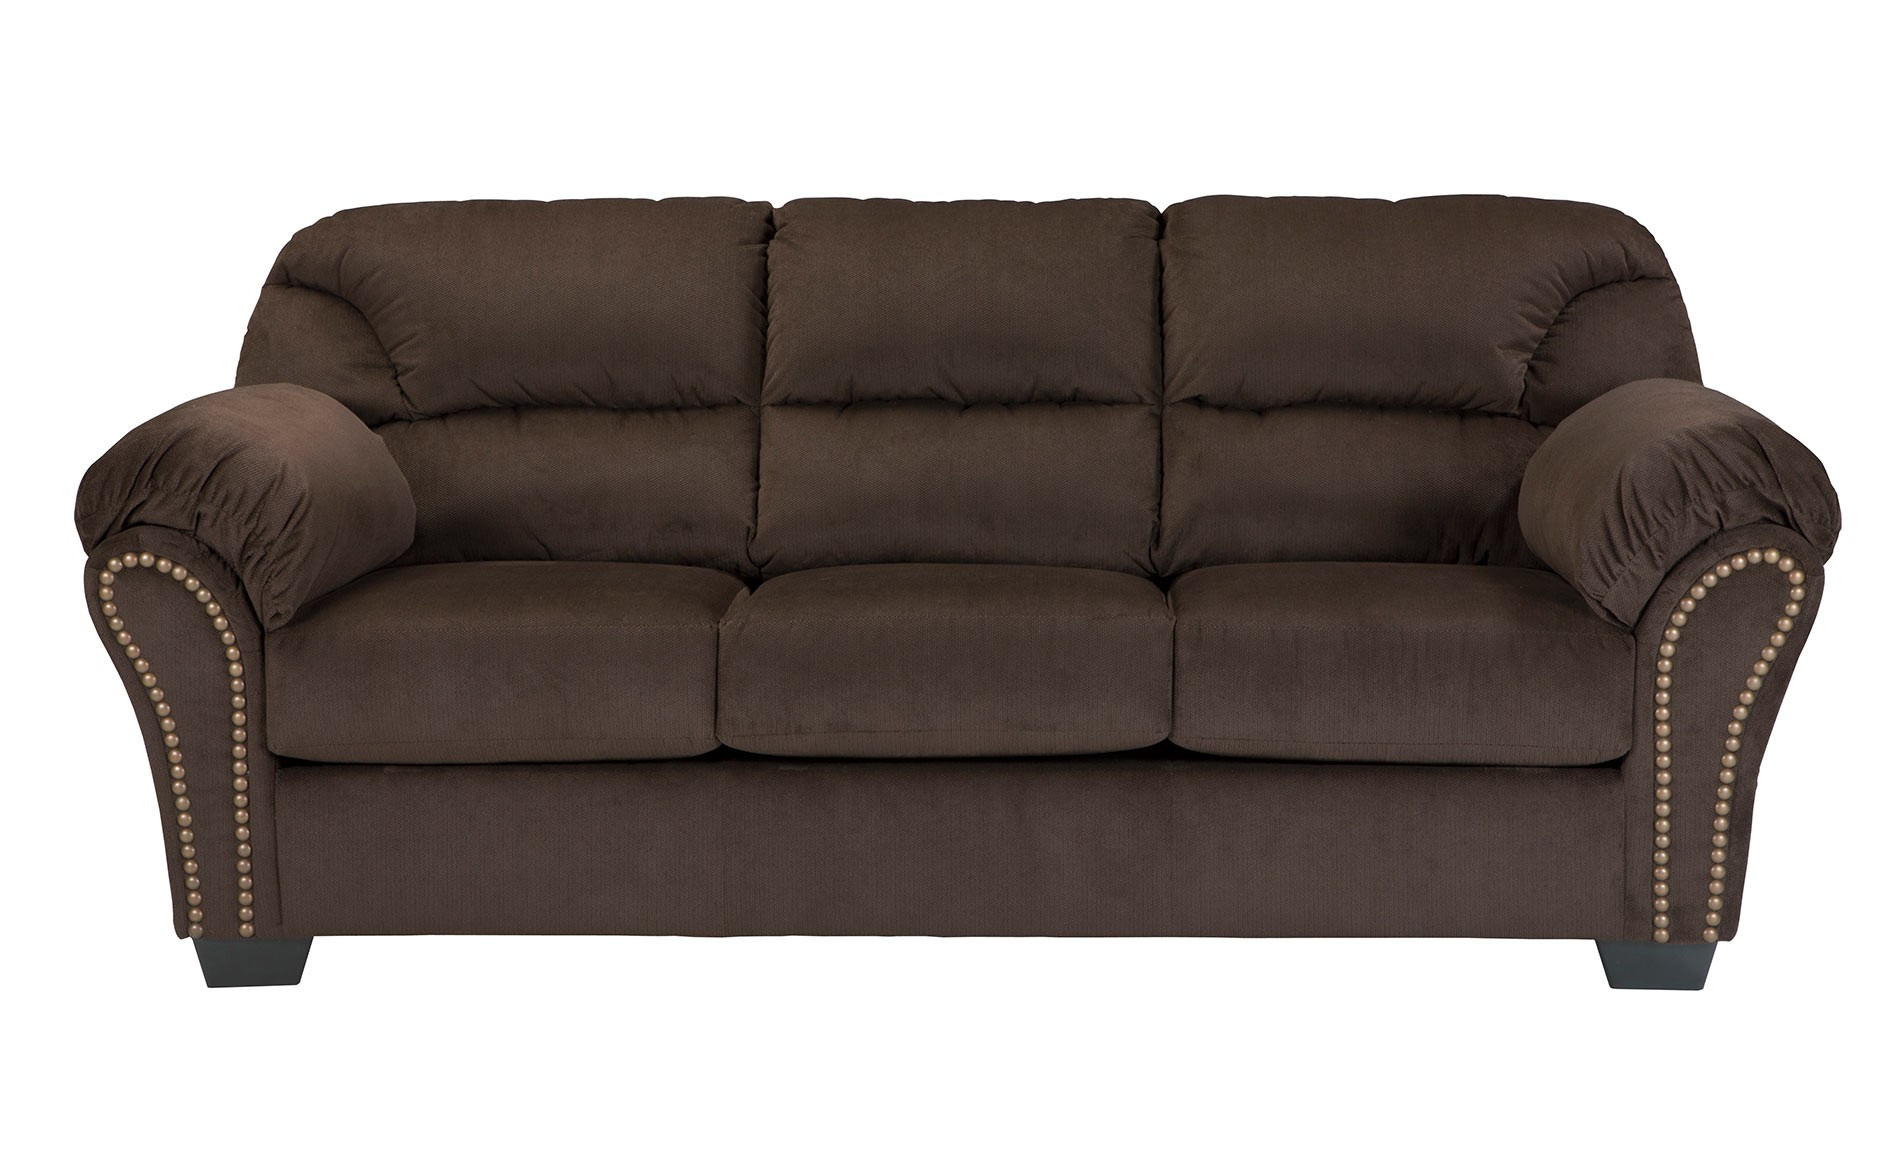 Best ideas about Discount Sleep Sofa . Save or Pin Kinlock Chocolate Full Sofa Sleeper Now.